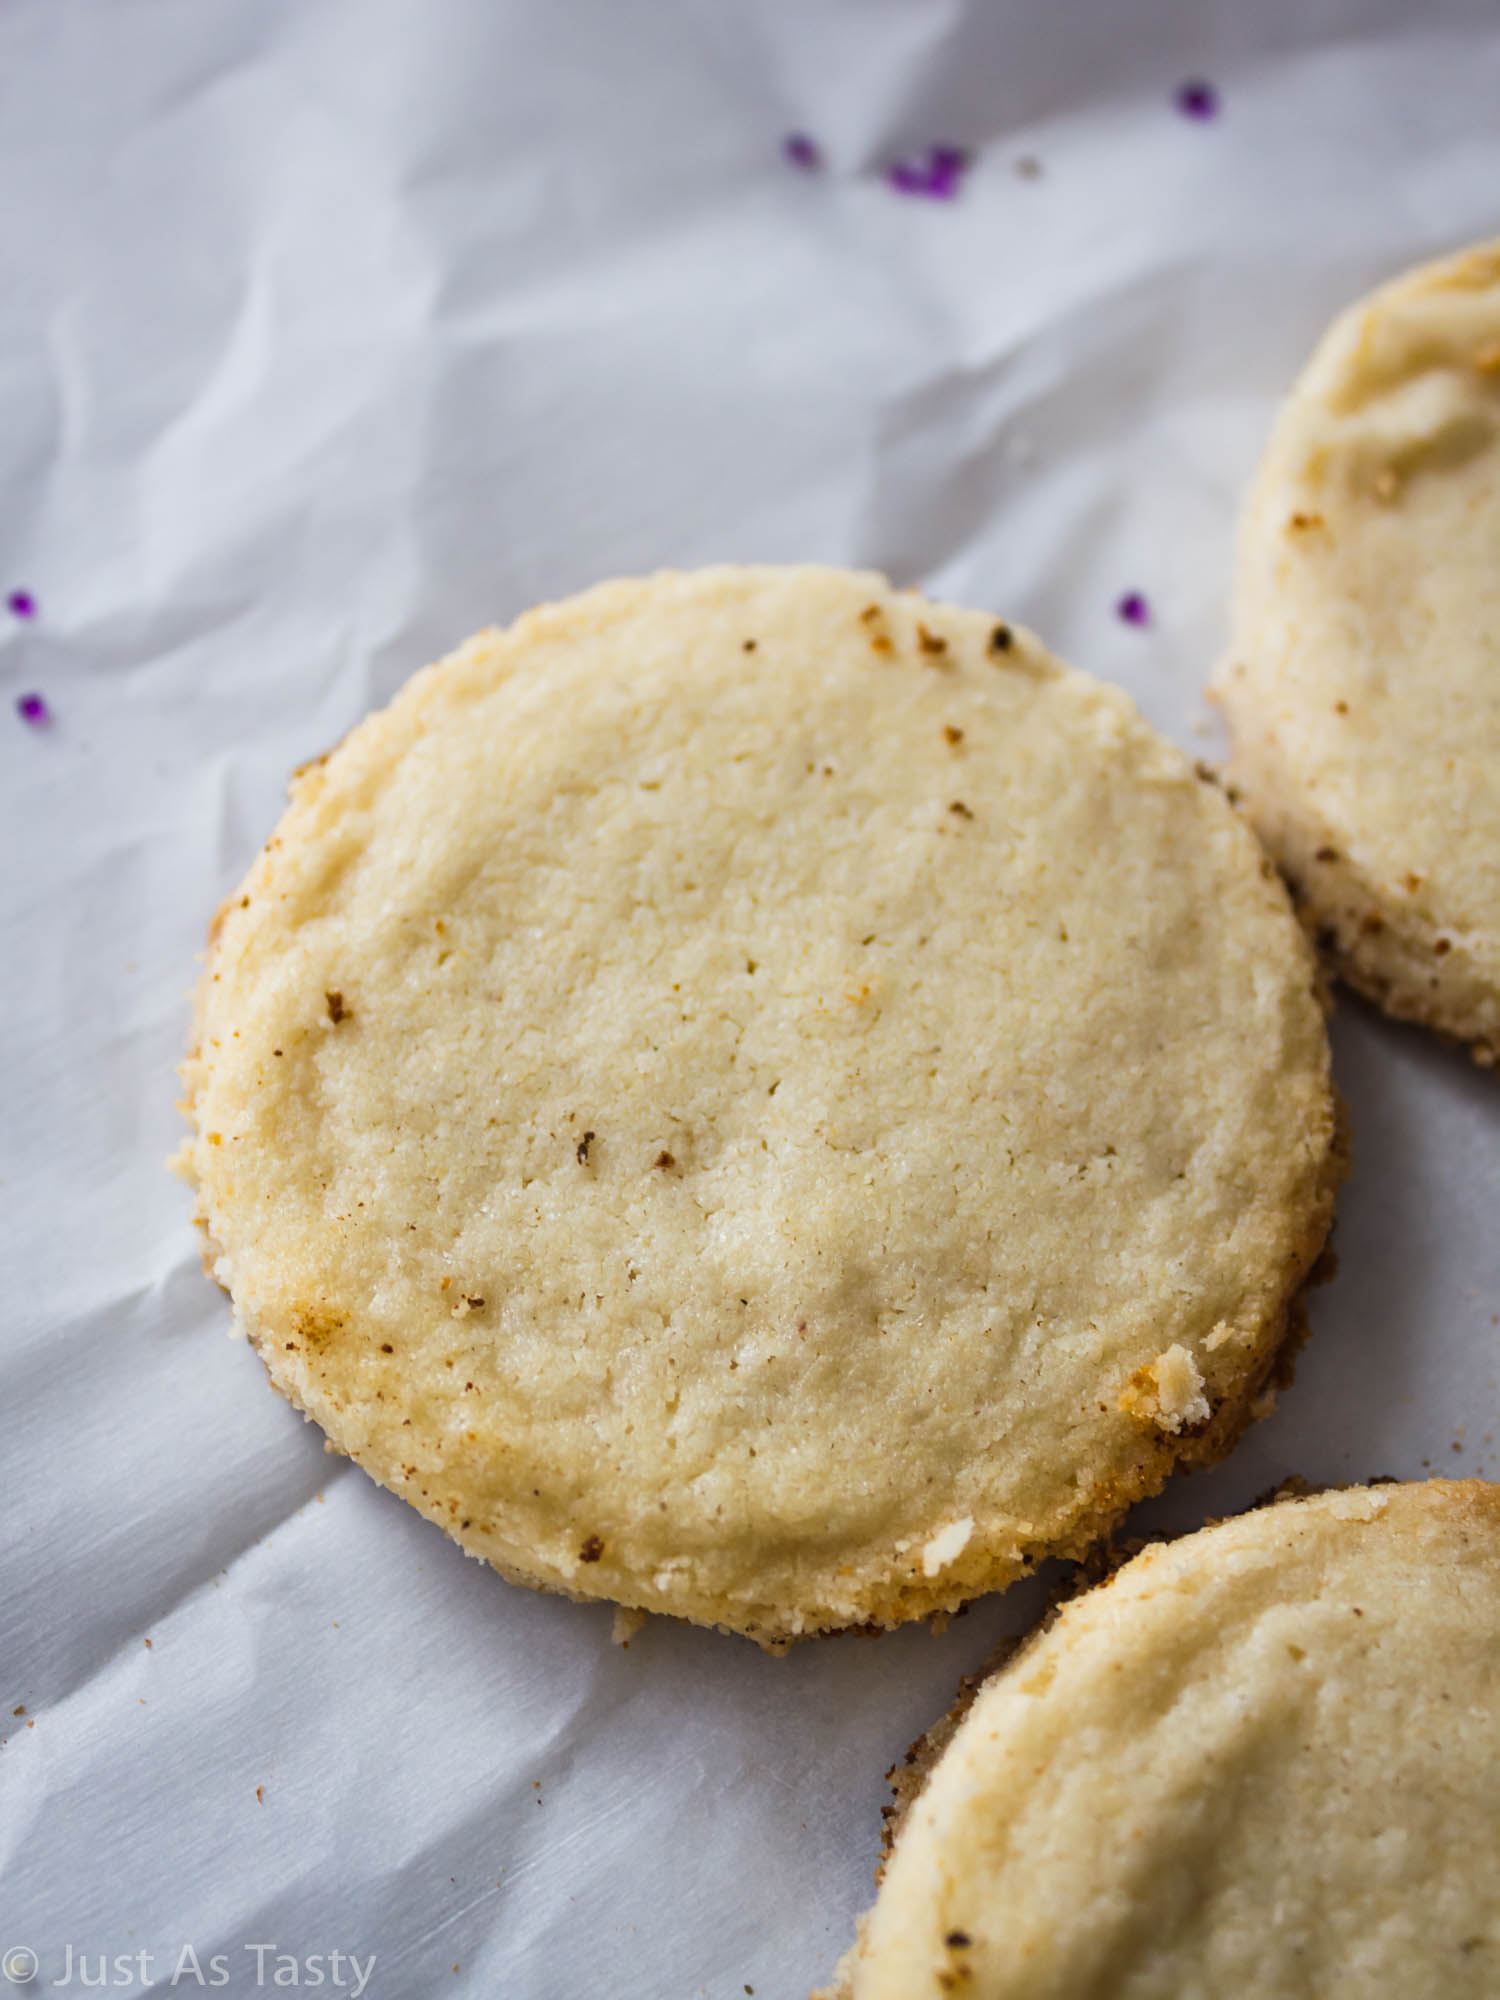 Close-up of a lavender shortbread cookie.